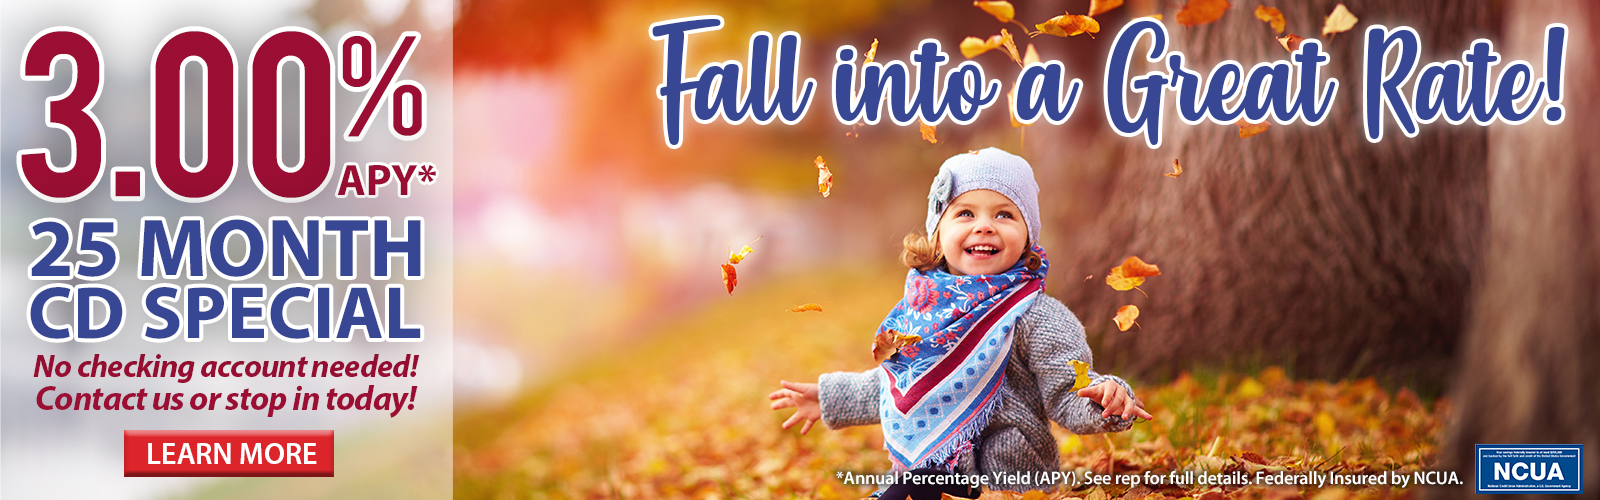 Fall into a great rate! 2.75% APY* 30 month CD special. No checking account needed! Contact us or stop in today. Click here to learn more.